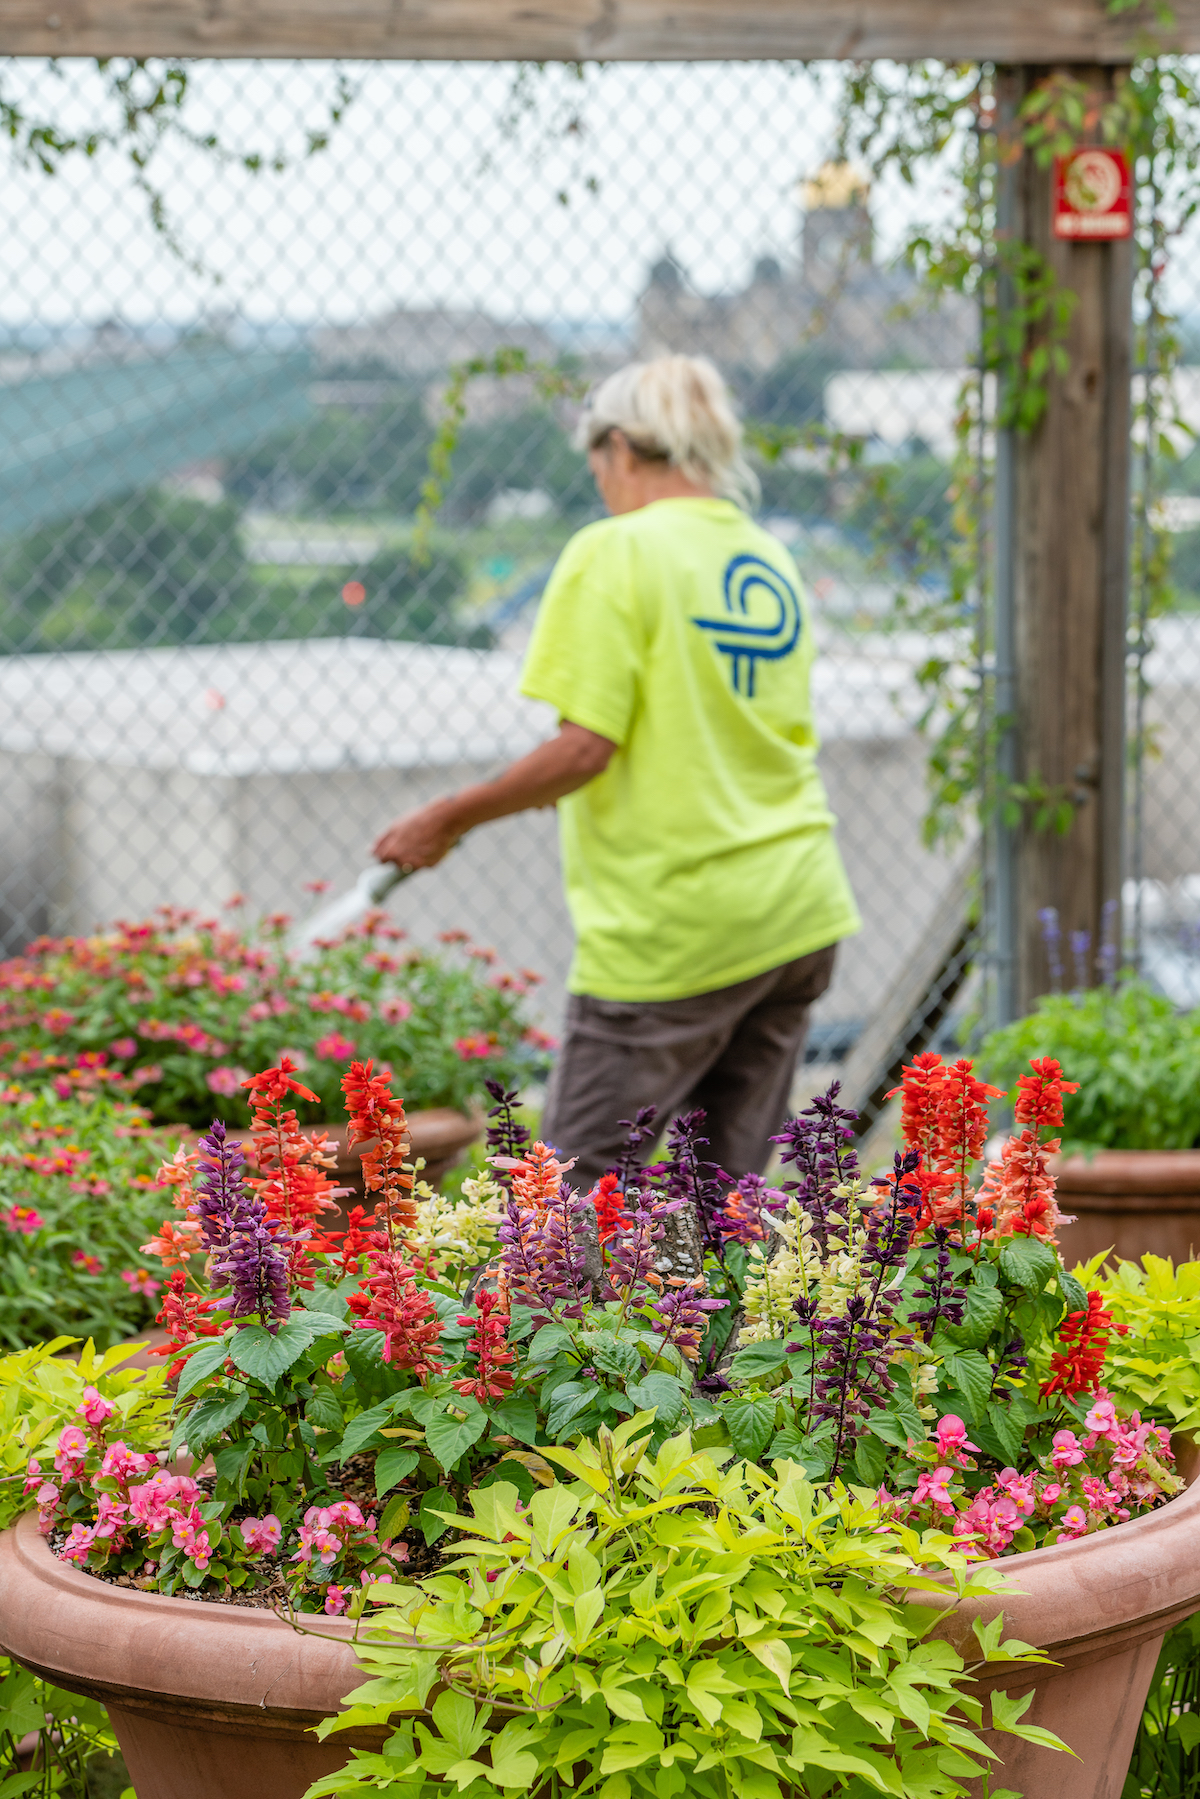 Perficut employee watering planters with colorful potted planter in the foreground